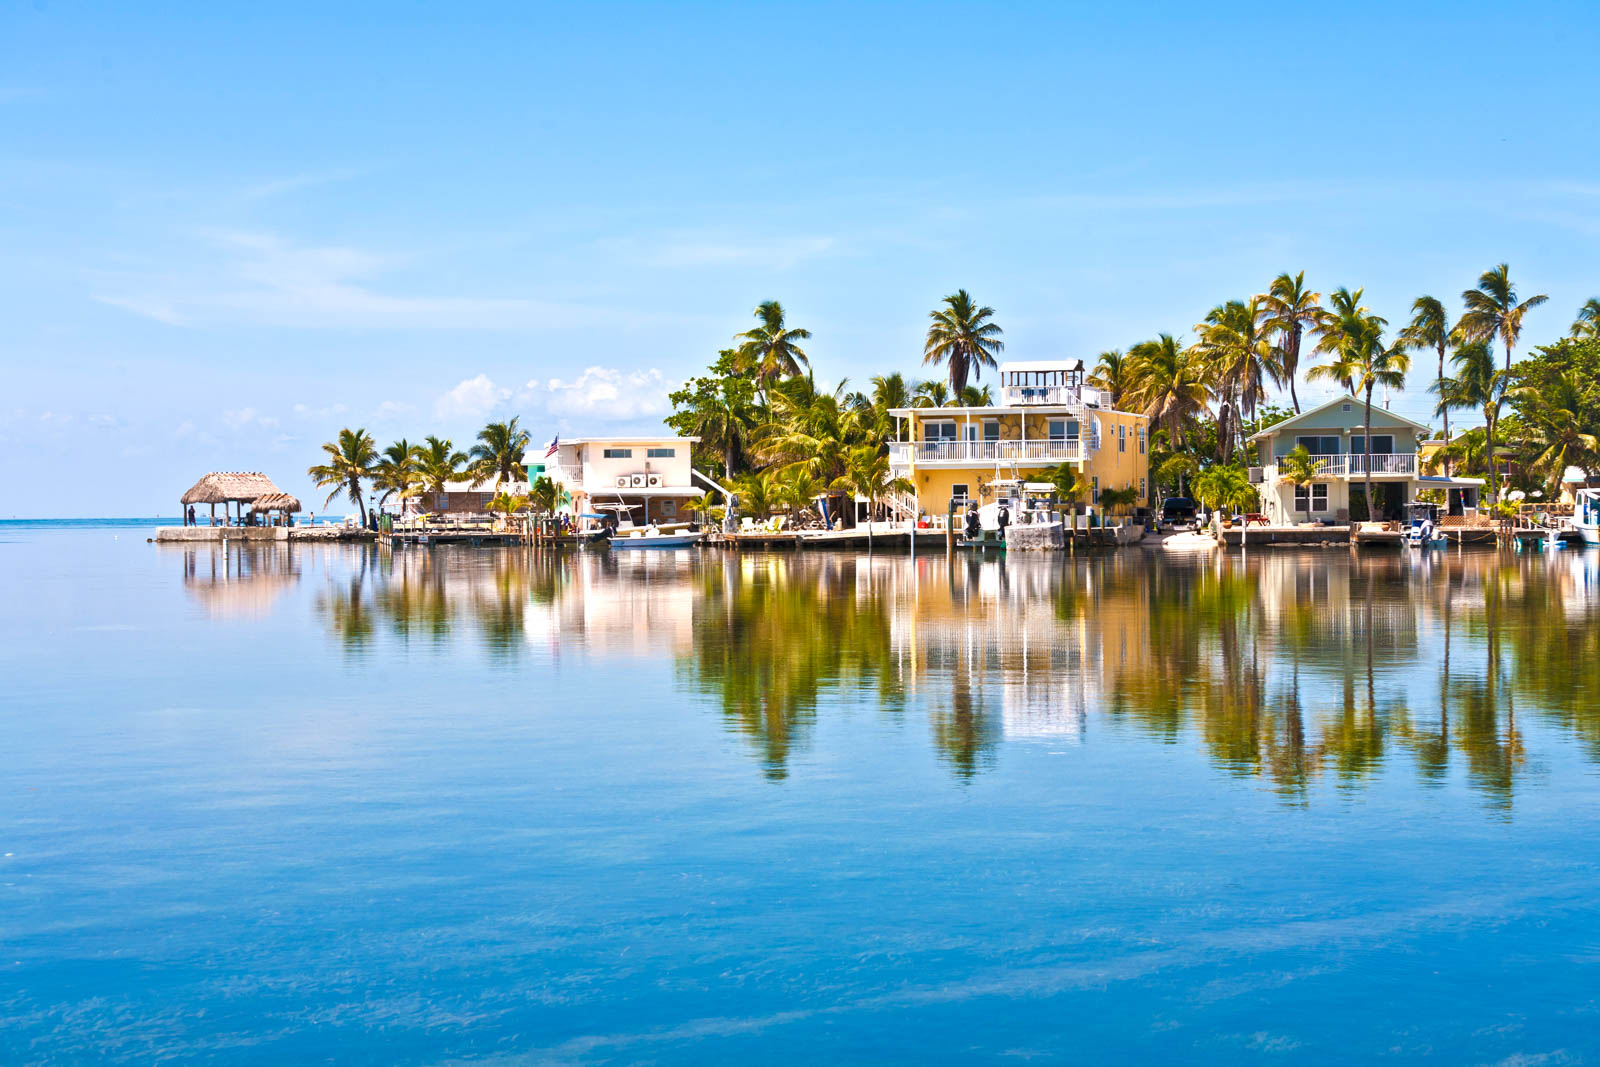 Of all the places to visit in Florida, Key Largo is among the best. Check out all the best things to do in South Florida Keys.